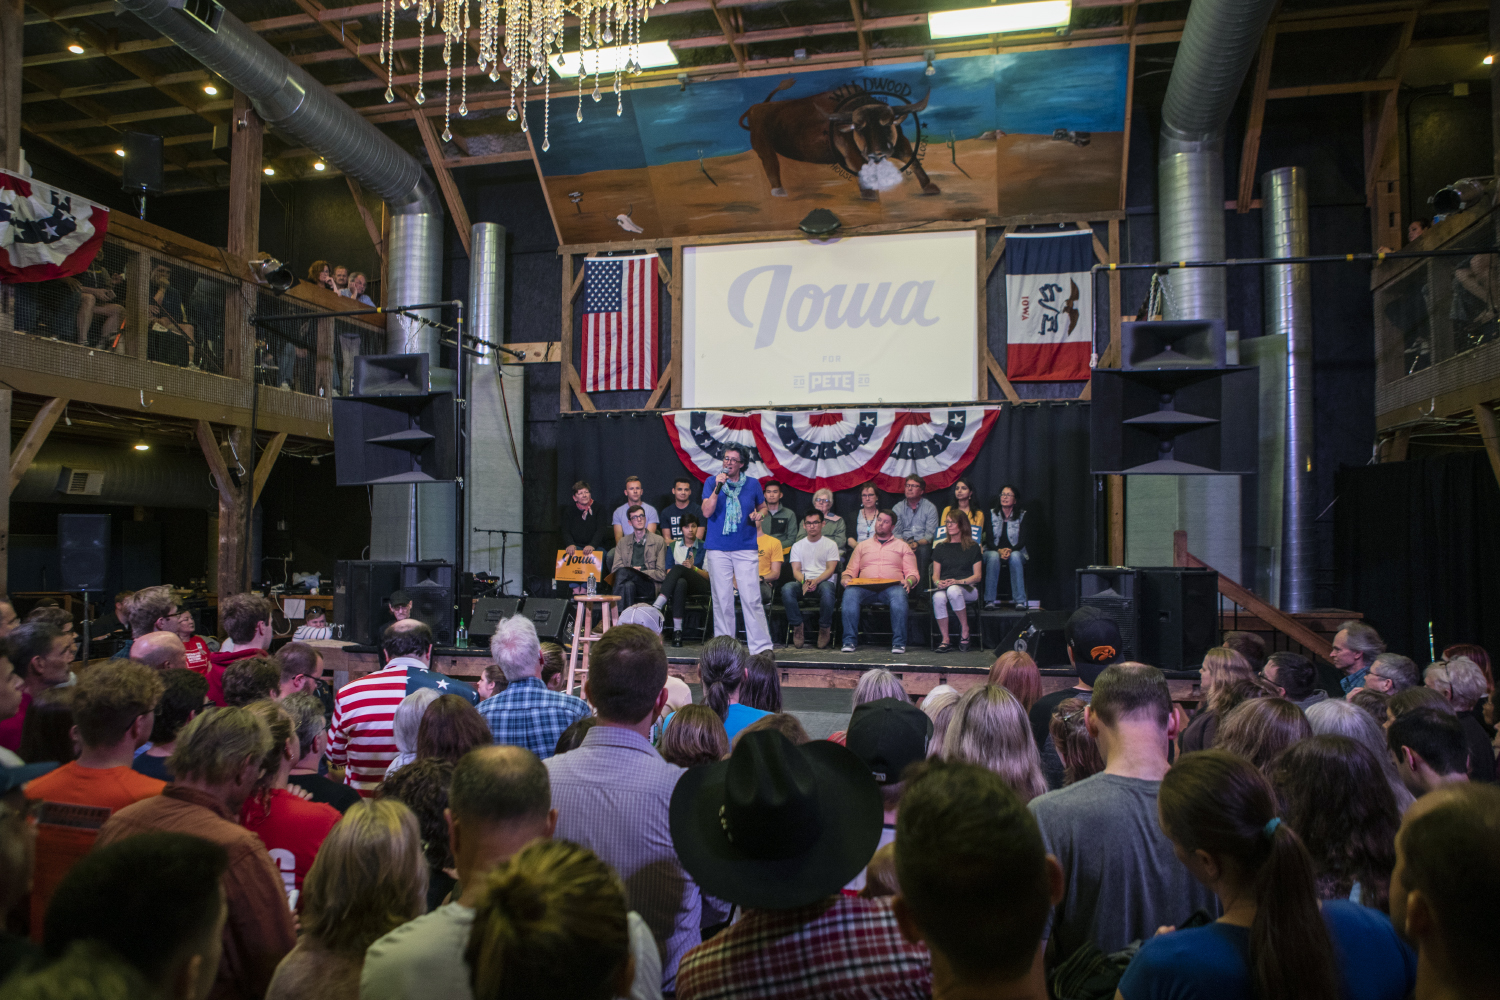 Johnson+County+Democrats+Public+Relations+Chair+Sarah+Prineas+speaks+before+the+town+hall+with+2020+Democratic+presidential-nomination+candidate+Pete+Buttigieg+at+the+Wildwood+Smokehouse+%26+Saloon+on+May+18%2C+2019.+The+Iowa+City+event+marked+the+third+of+four+Iowa+campaign+stops+for+Buttigieg+this+weekend.